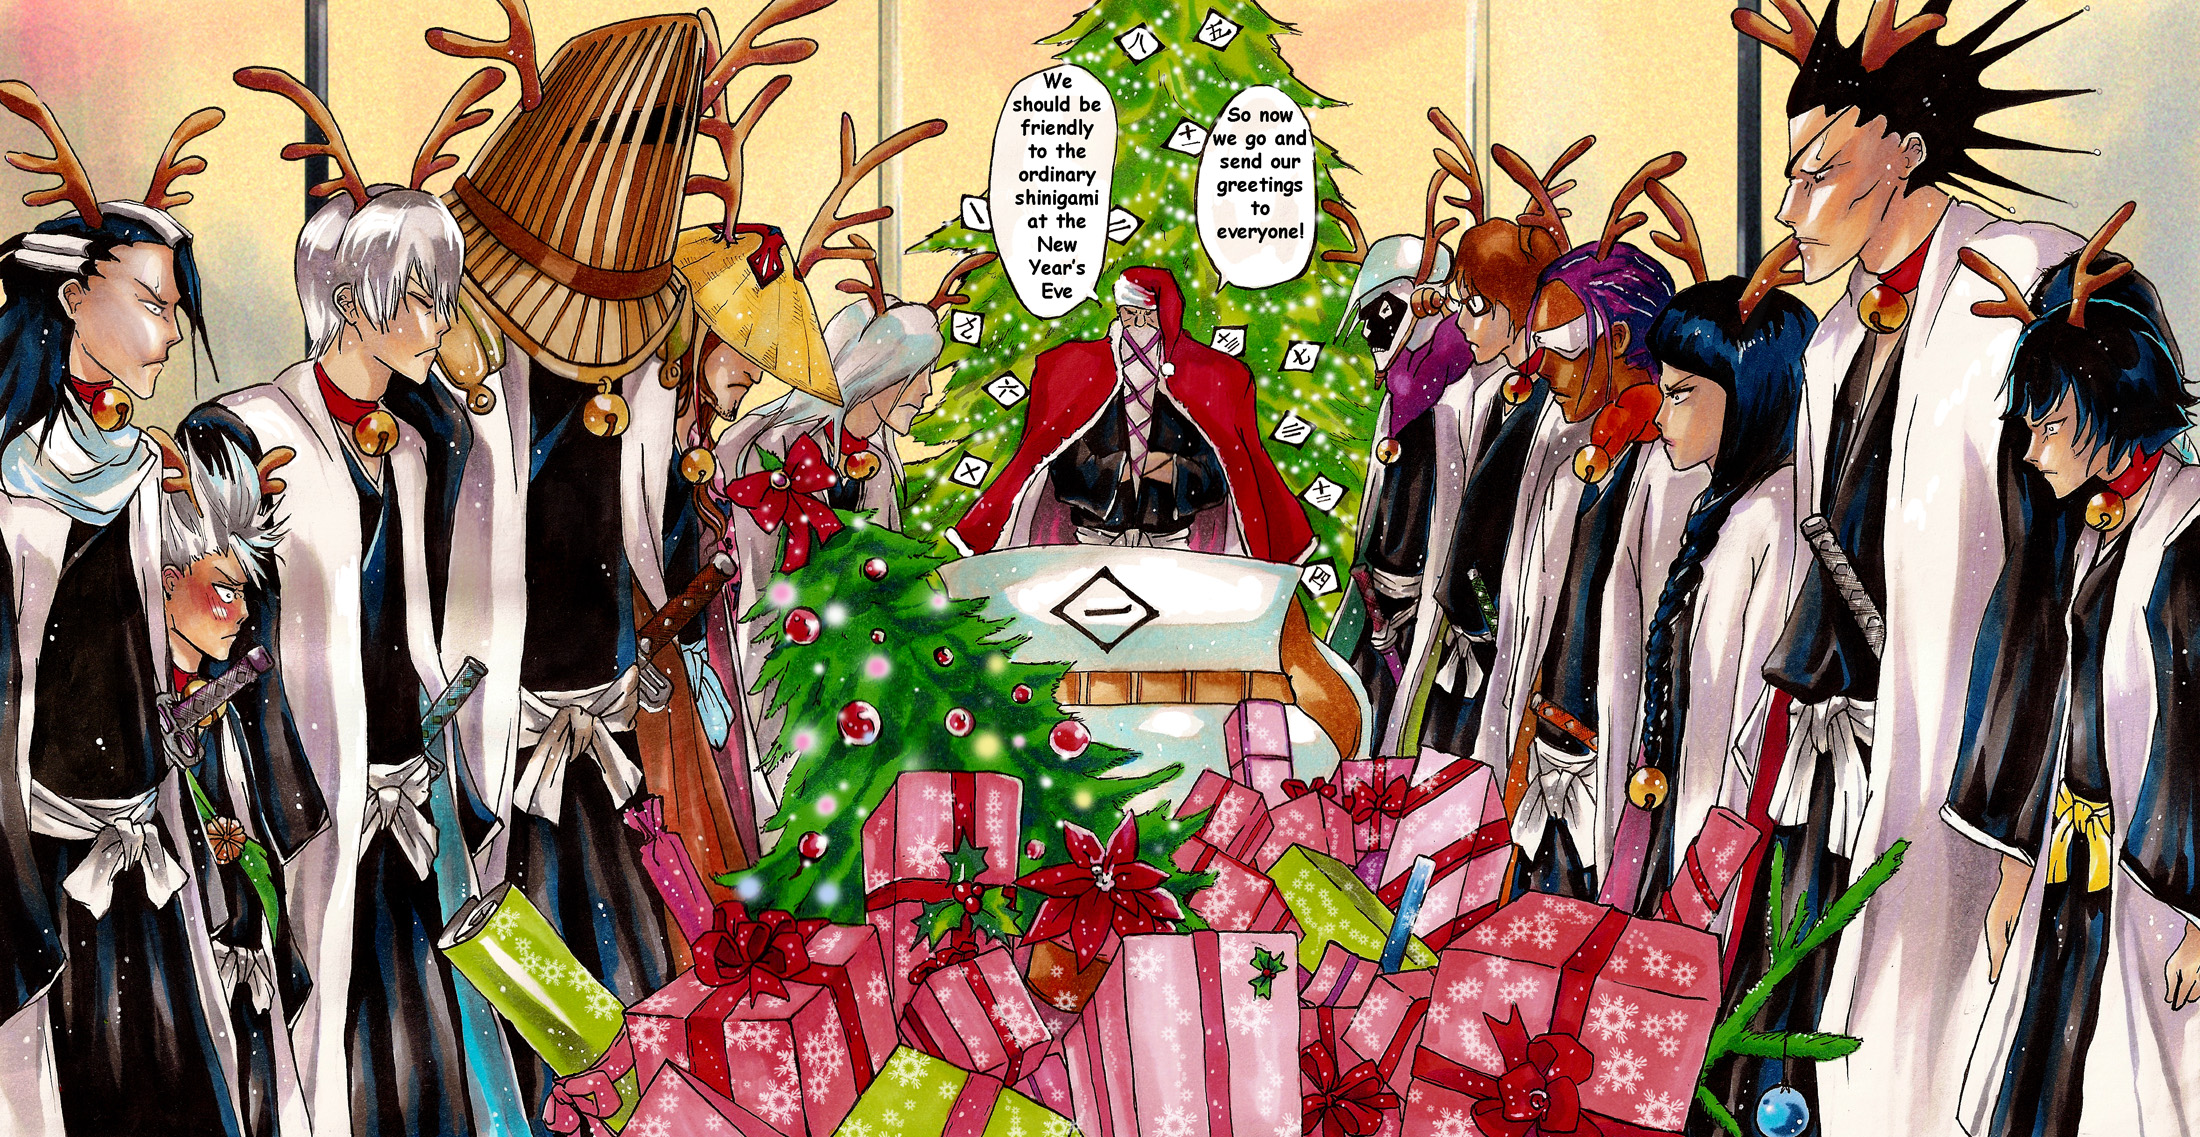 http://fc06.deviantart.net/fs71/f/2009/363/1/5/Happy_Bleach_New_Year_by_pink_pink.jpg